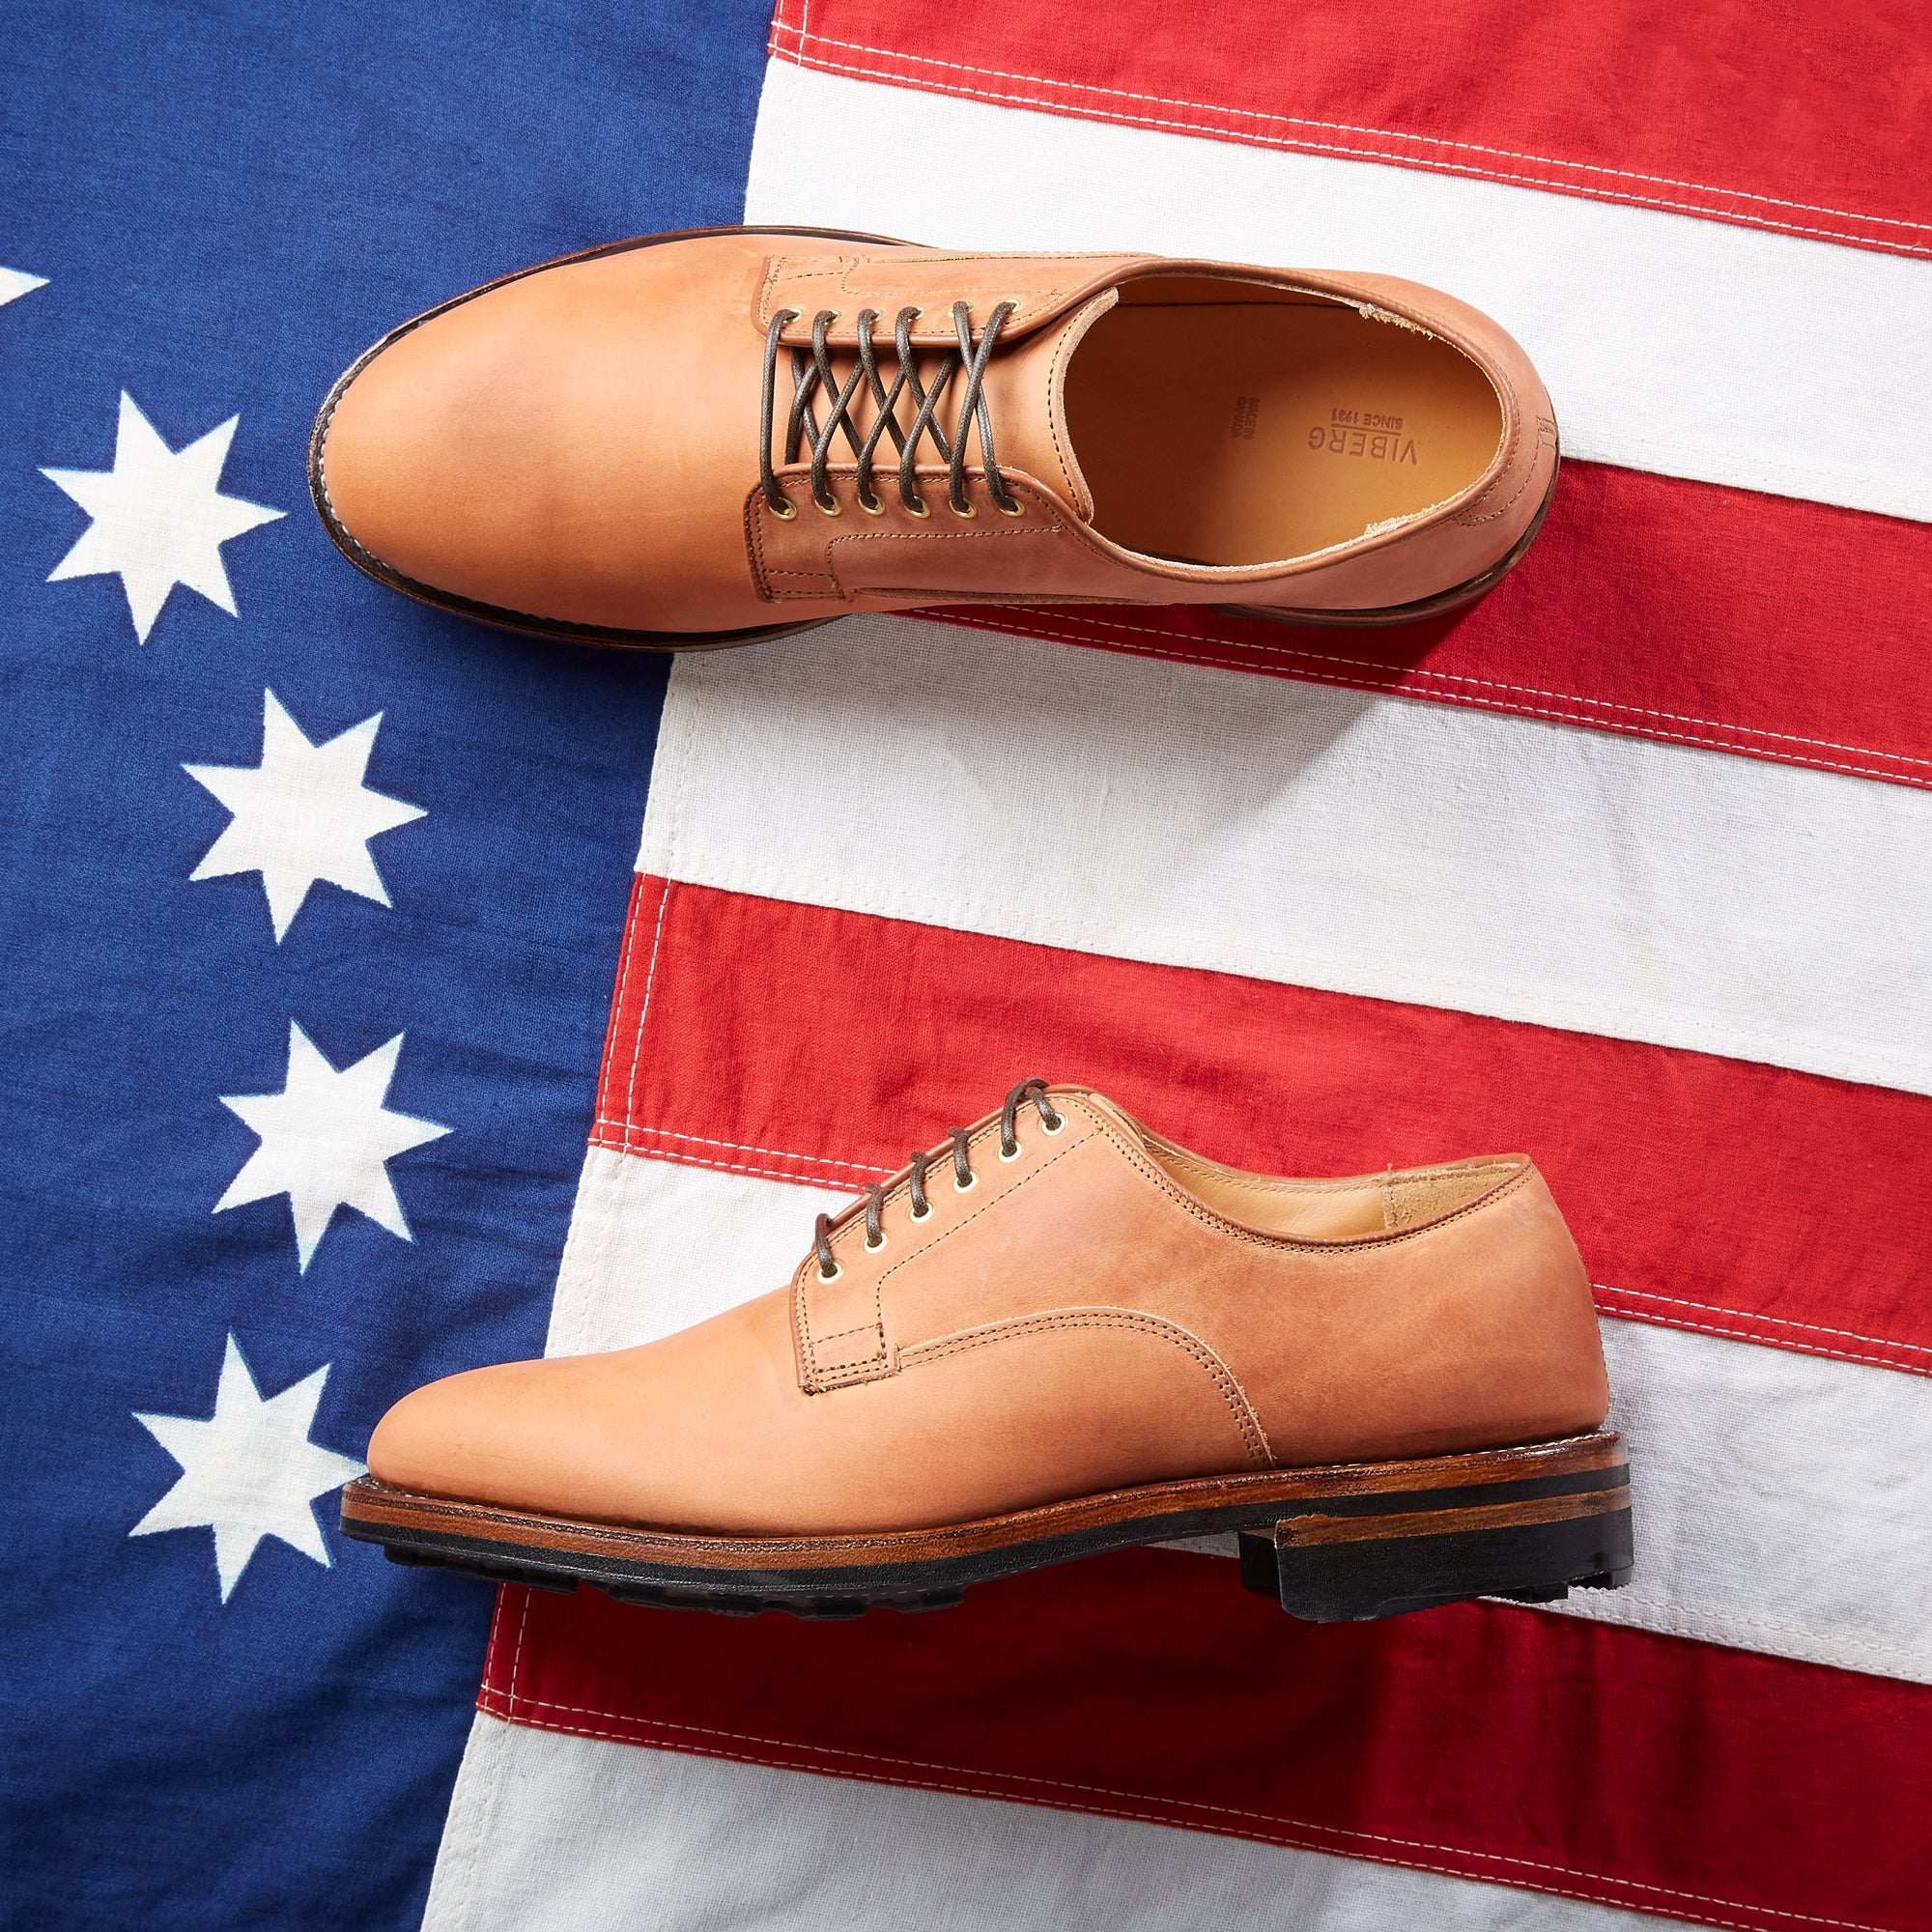 Division Road | Tannino Vitello Calf Derby Shoe